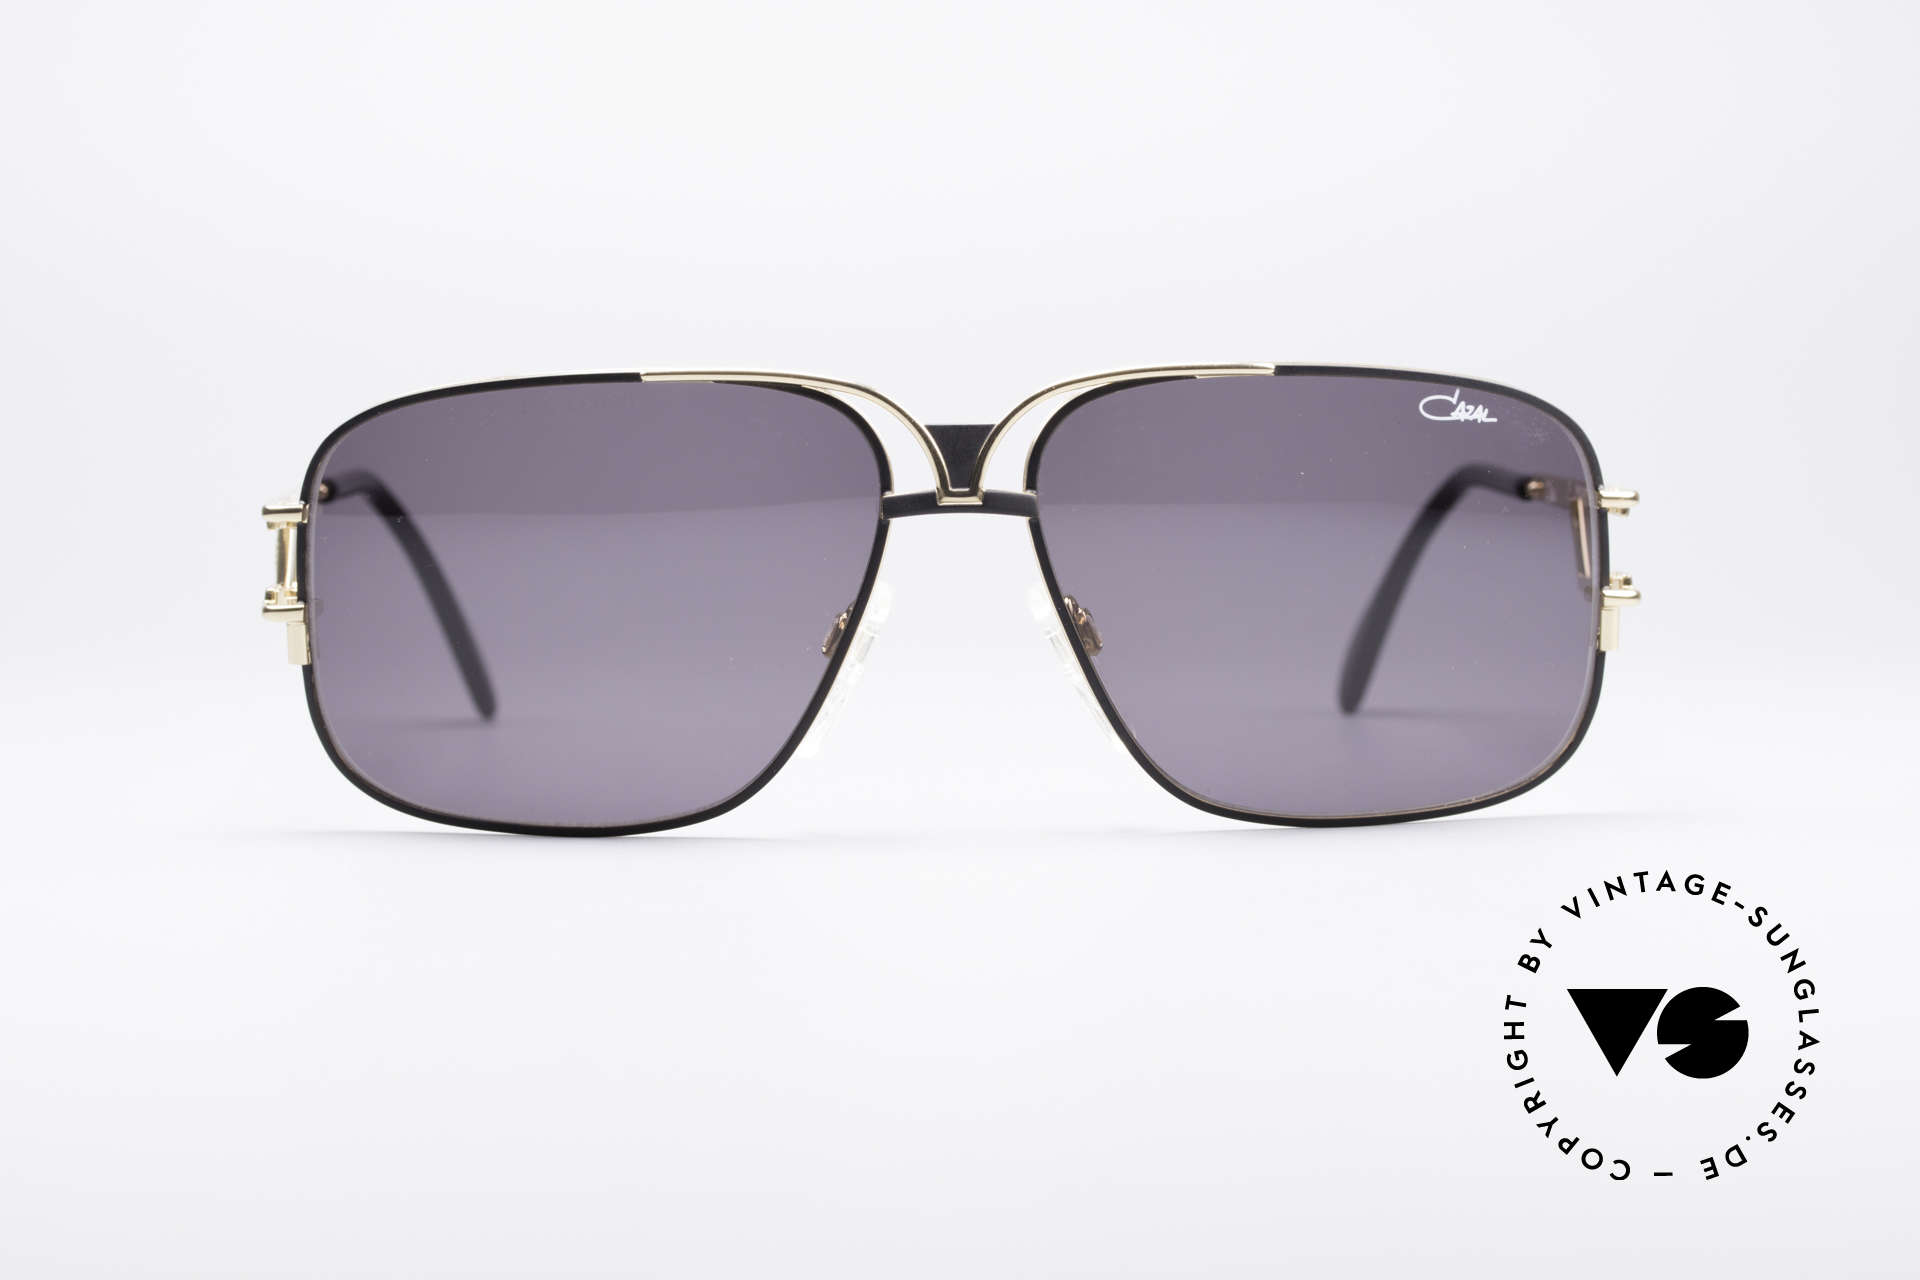 Cazal 971 Ultra Rare Designer Shades, phenomenal quality 'Made in Germany' - just monolithic, Made for Men